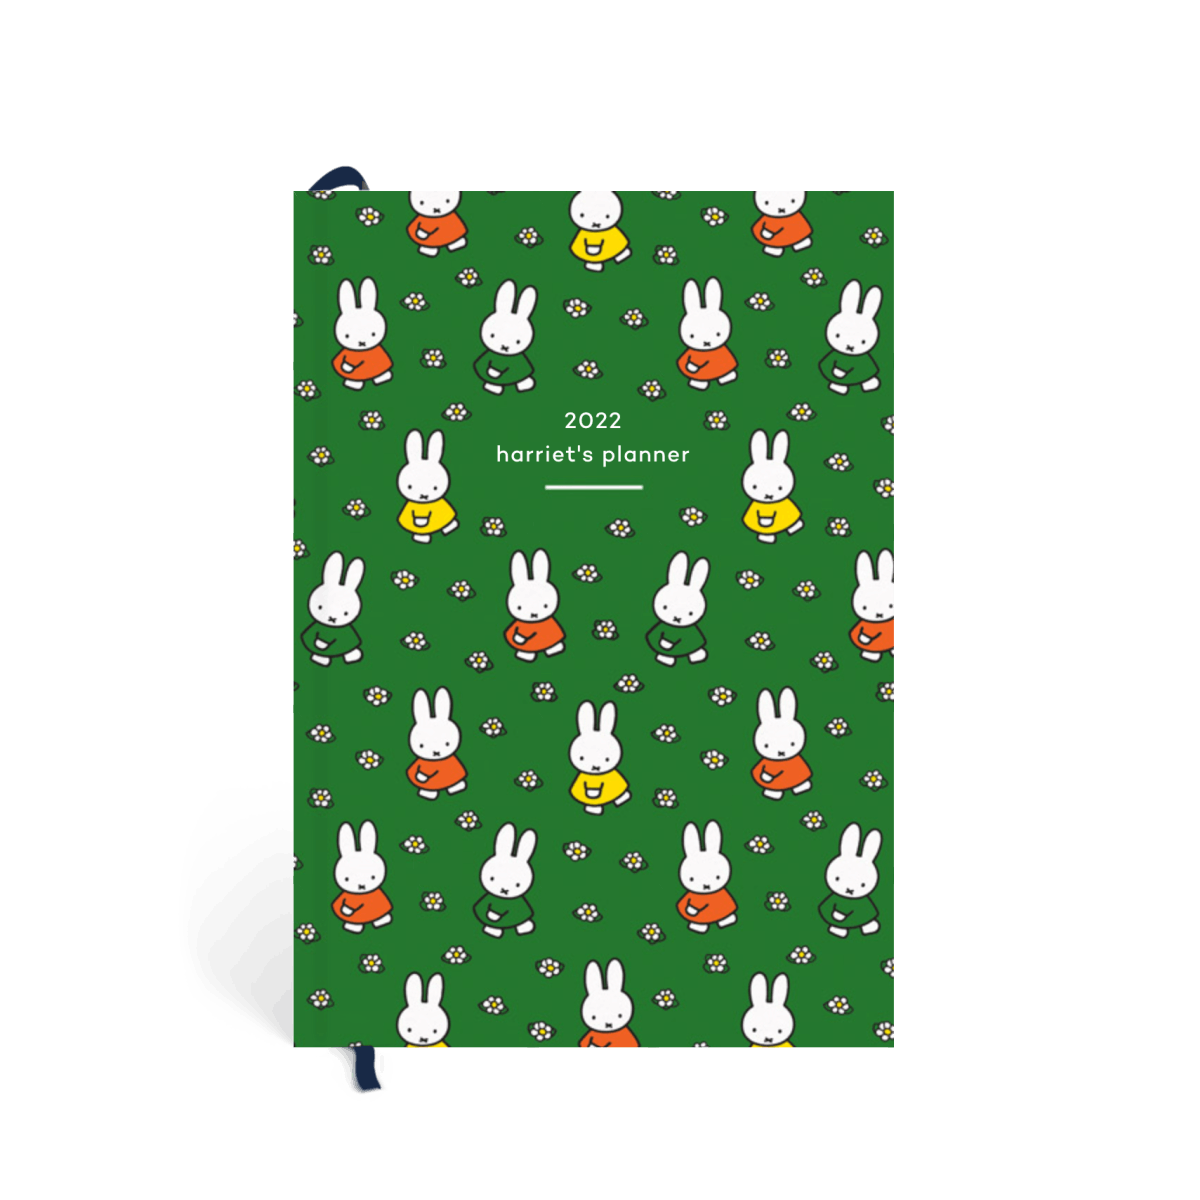 Https%3a%2f%2fwww.papier.com%2fproduct image%2f95635%2f36%2fdaisy miffy 23982 front 1572437729.png?ixlib=rb 1.1